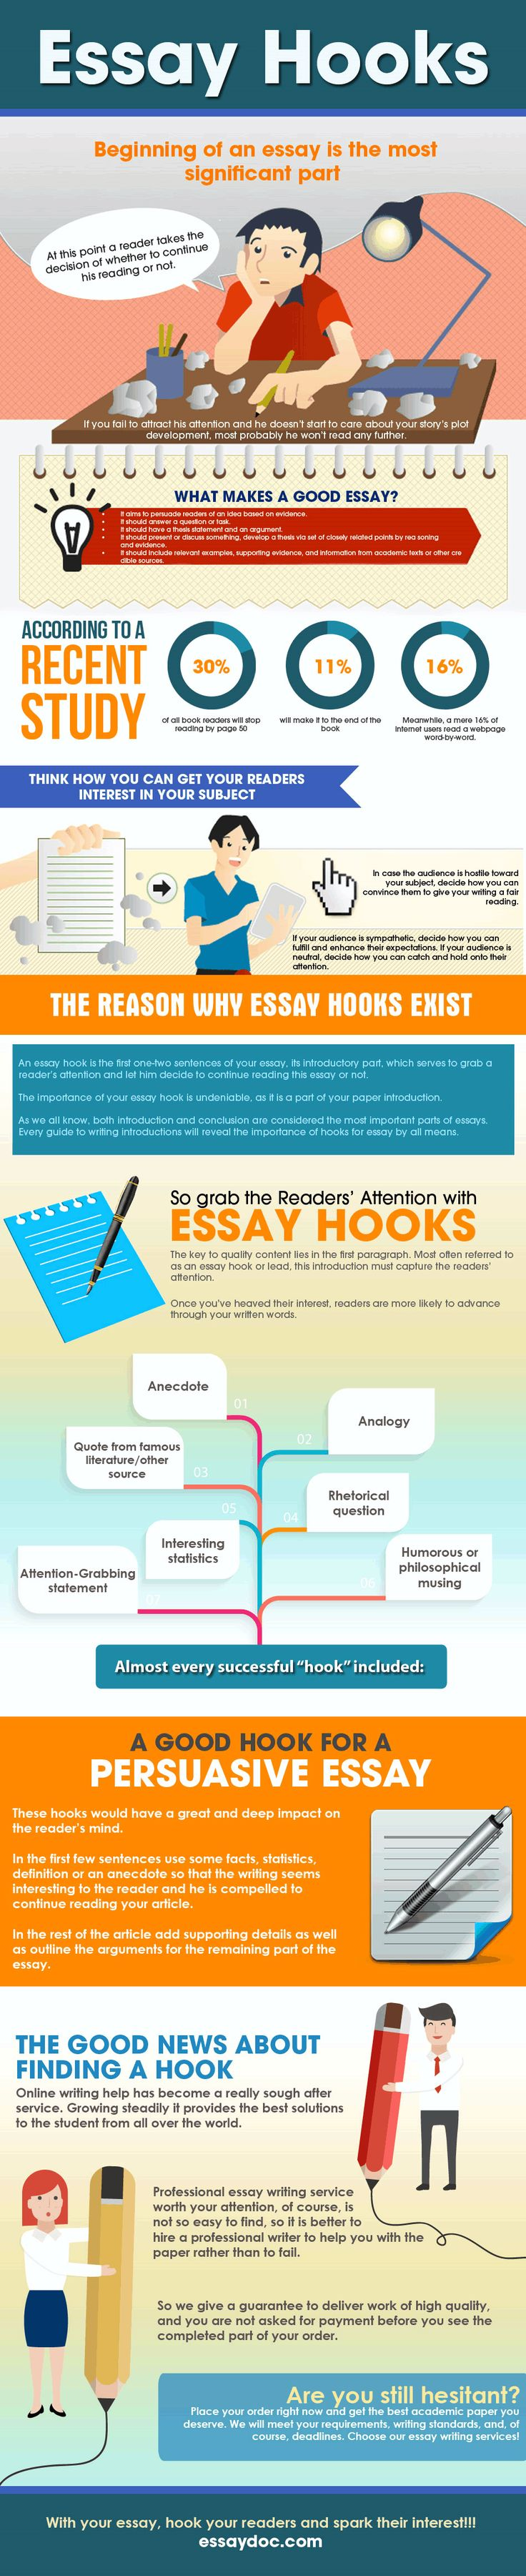 How To Write An Application Essay For High School Essay Hooks Infographic Academic Writingscientific  High School Reflective Essay Examples also An Essay On Newspaper Best  Essay Writing Ideas On Pinterest  Essay Writing Tips  Health Care Reform Essay